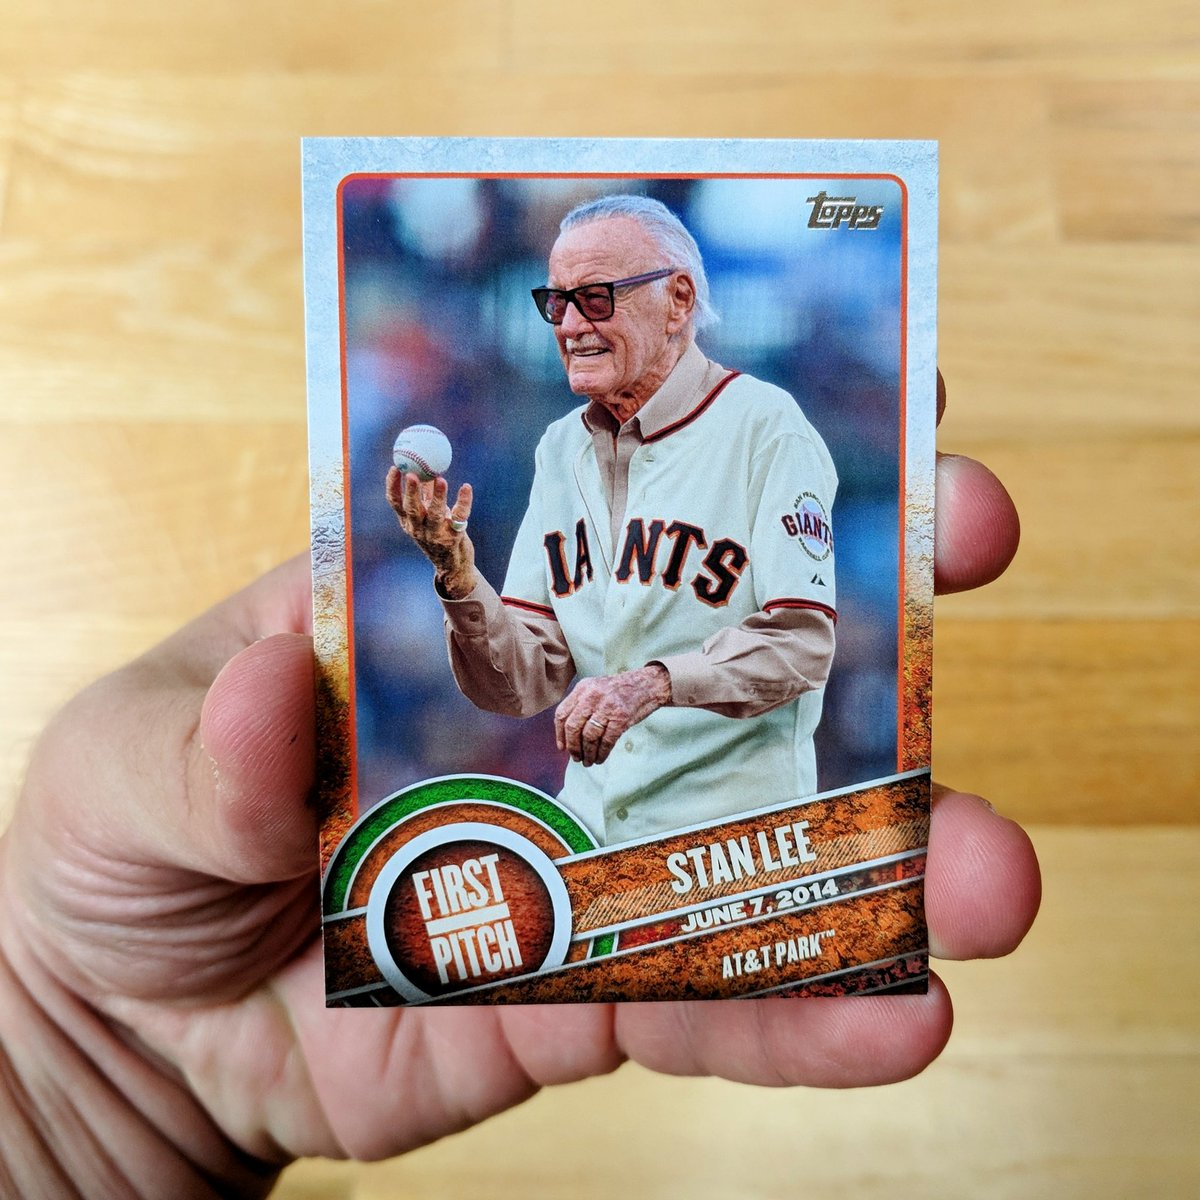 Jason Polan On Twitter I Found A Stan Lee Baseball Card Today For